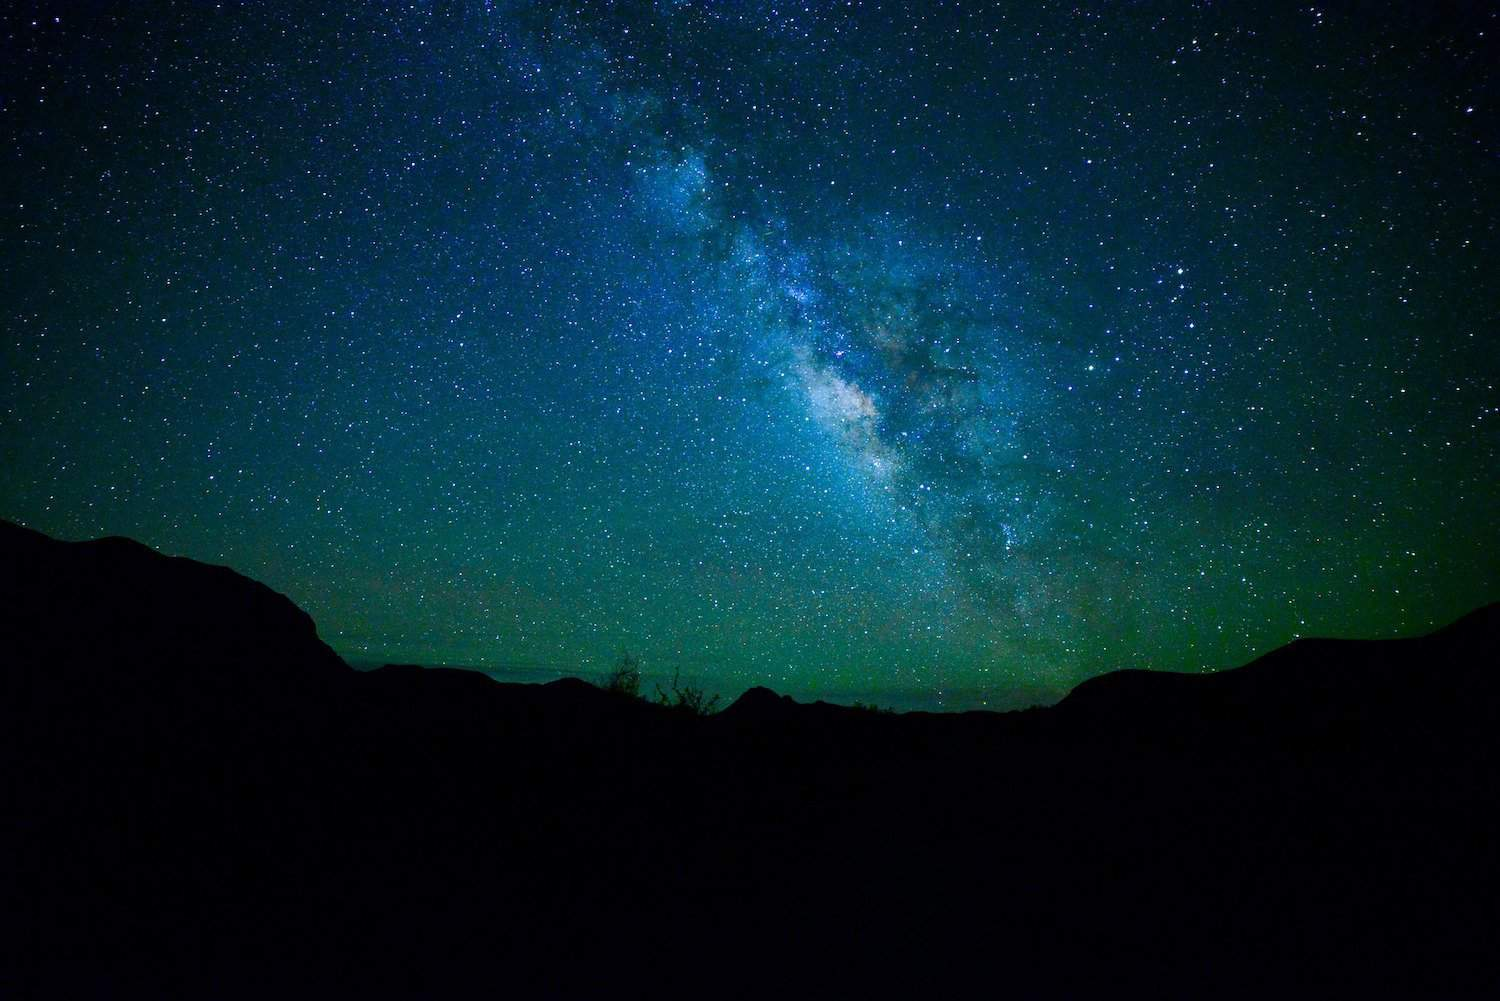 Stargazing in Big Bend - Alison I. via Flickr